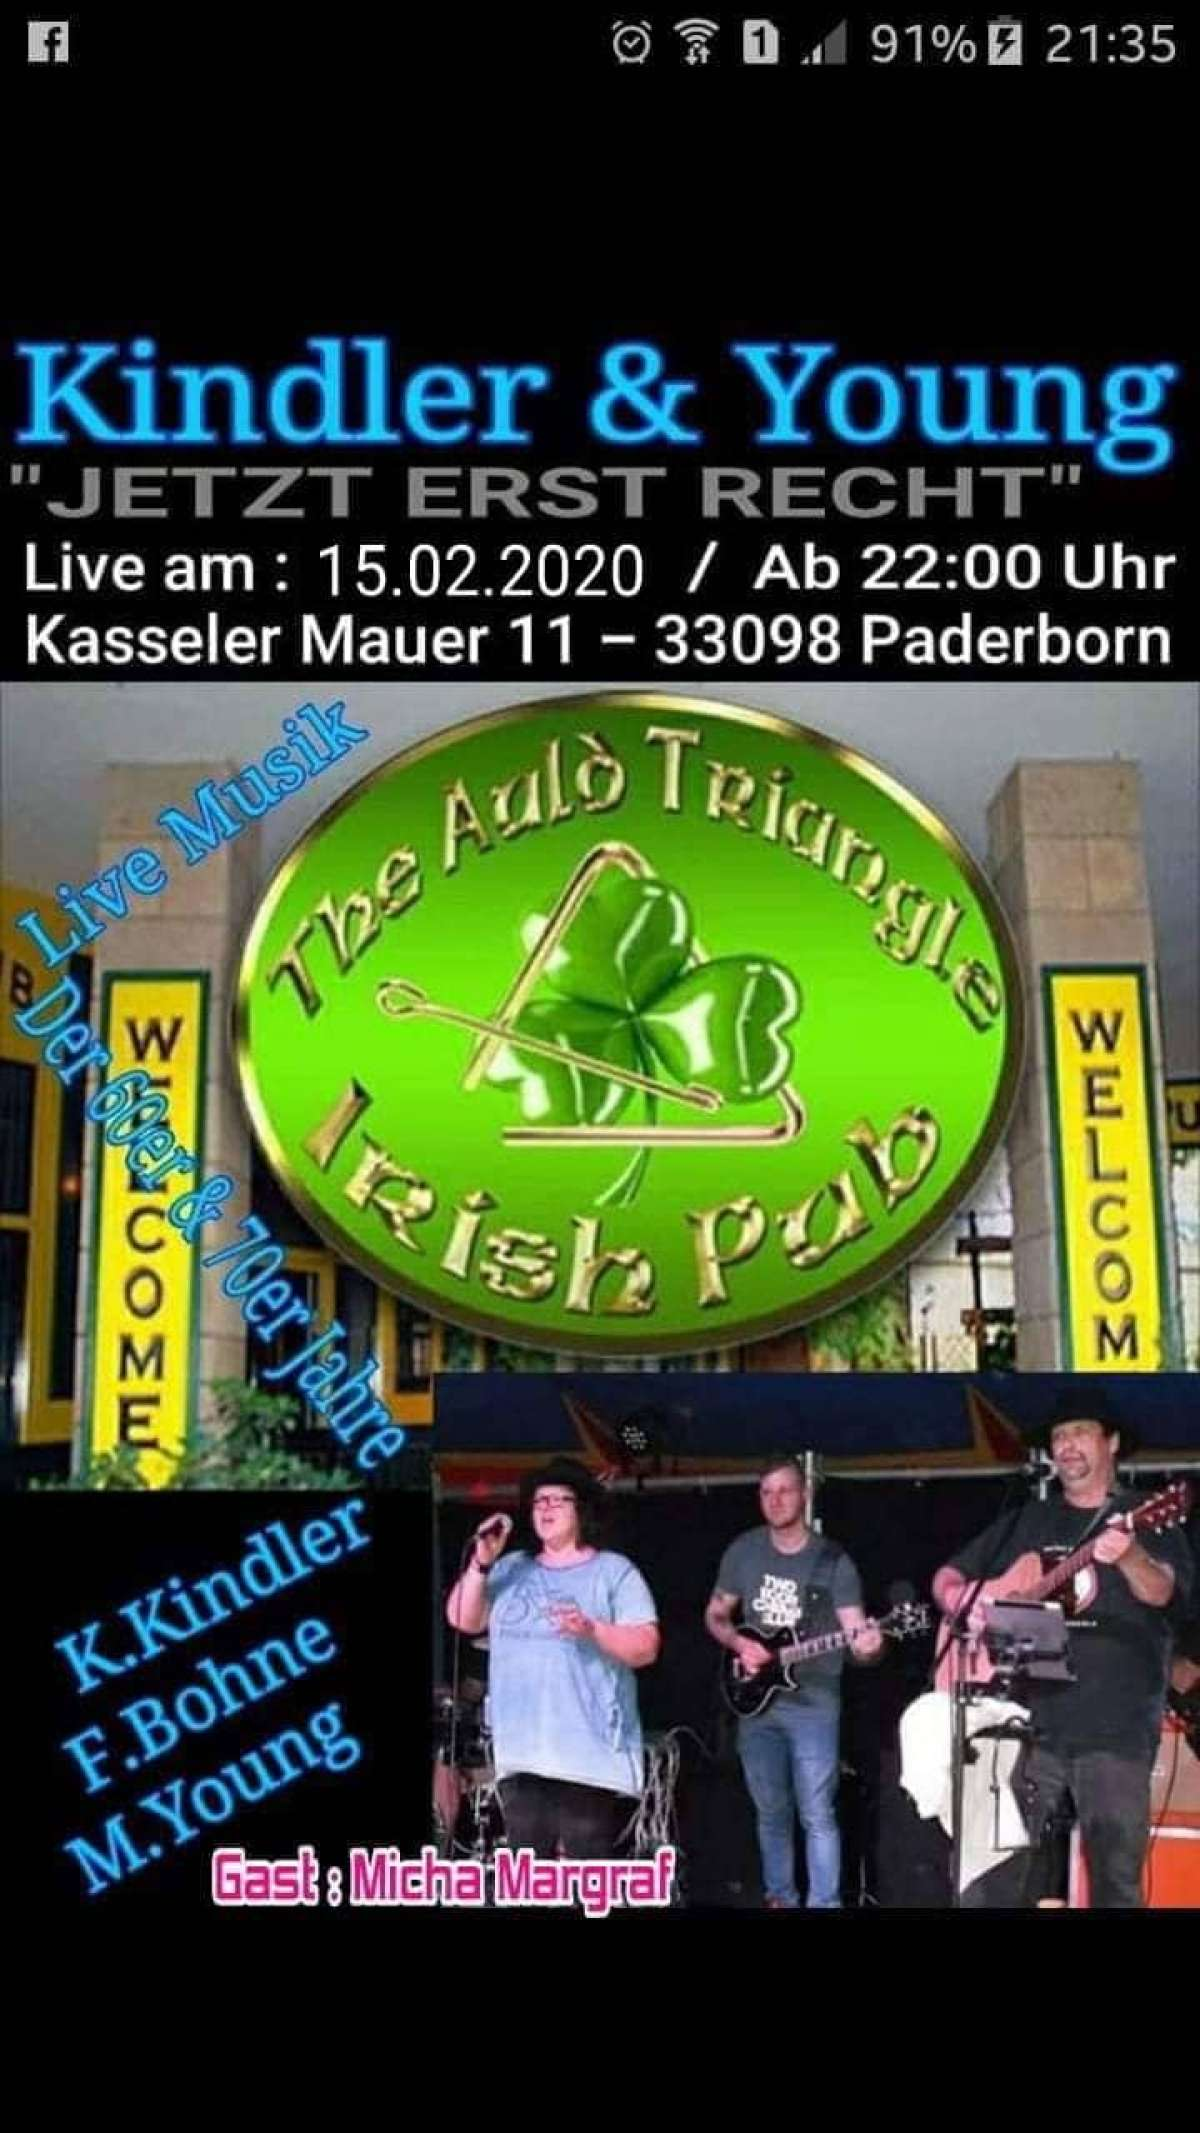 Kindler & Young - The Auld Triangle - Paderborn